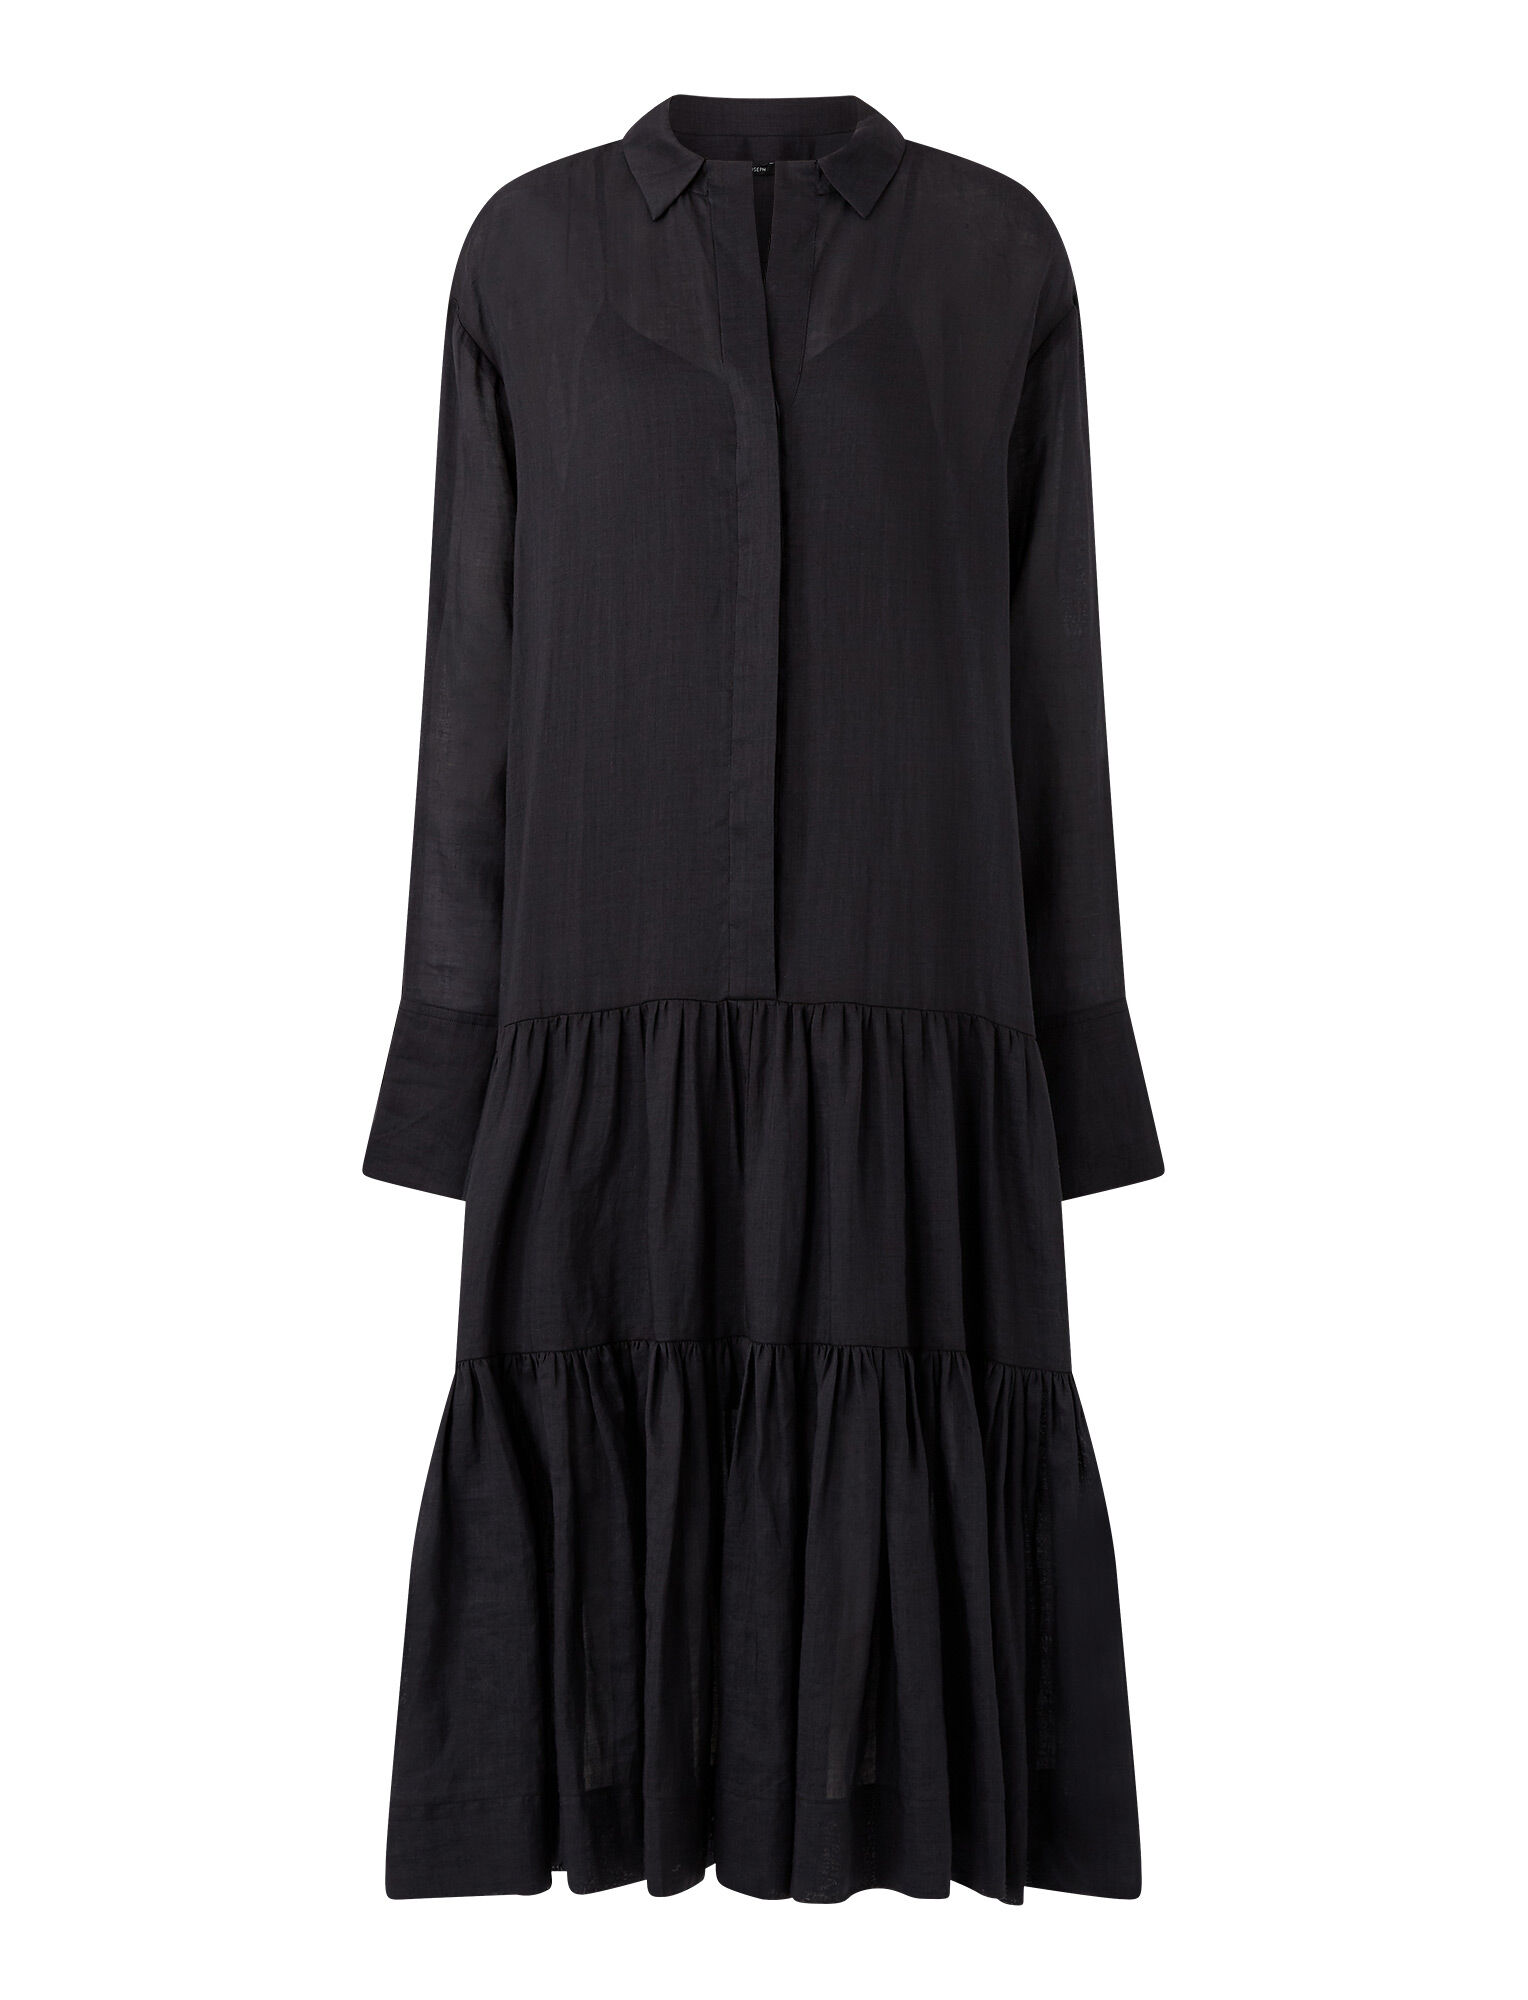 Joseph, Ramie Voile Dan Dress, in BLACK